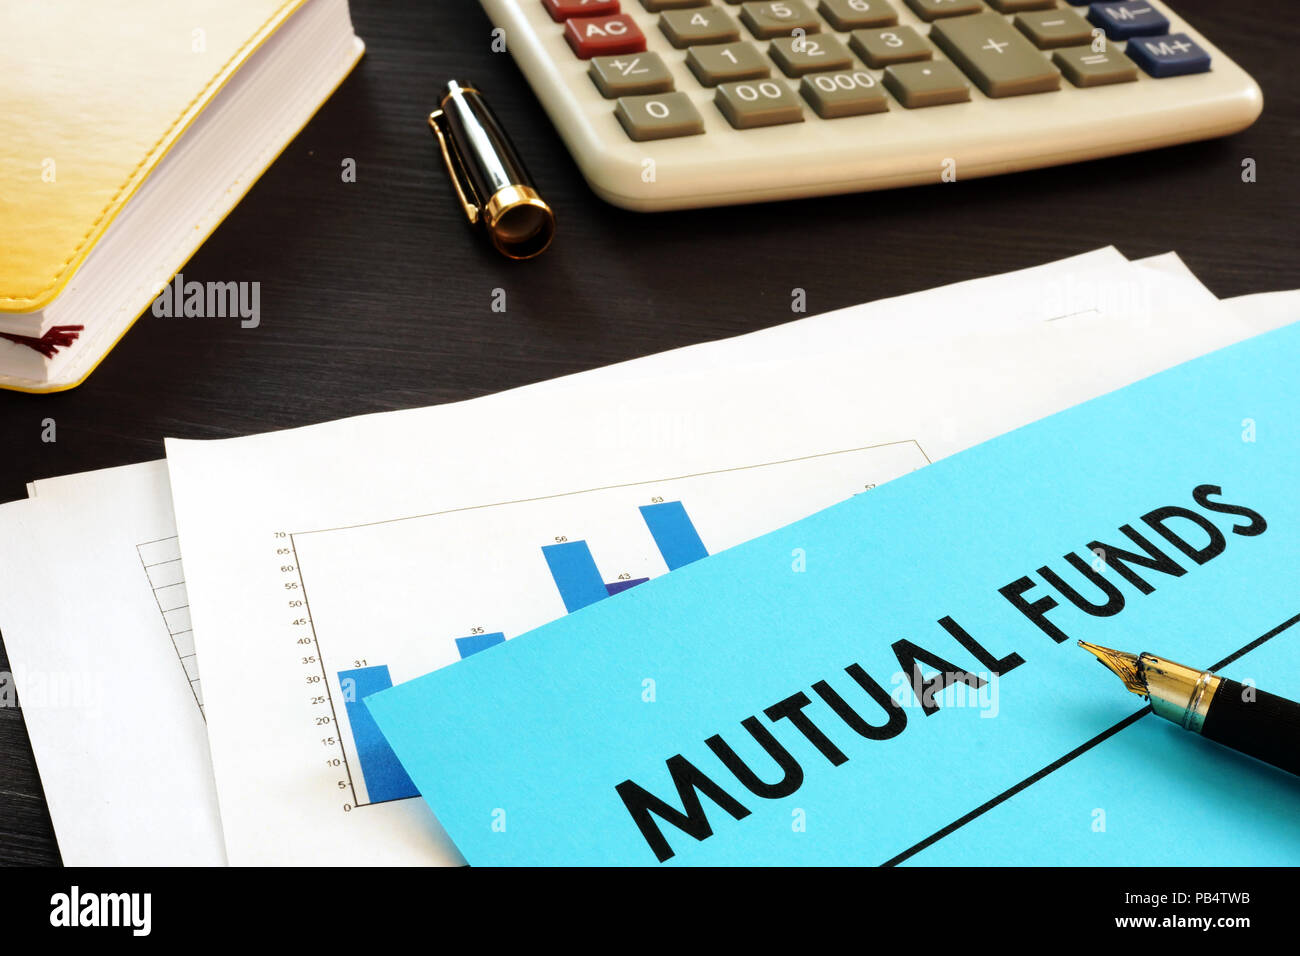 Financial documents about mutual funds on a desk. - Stock Image